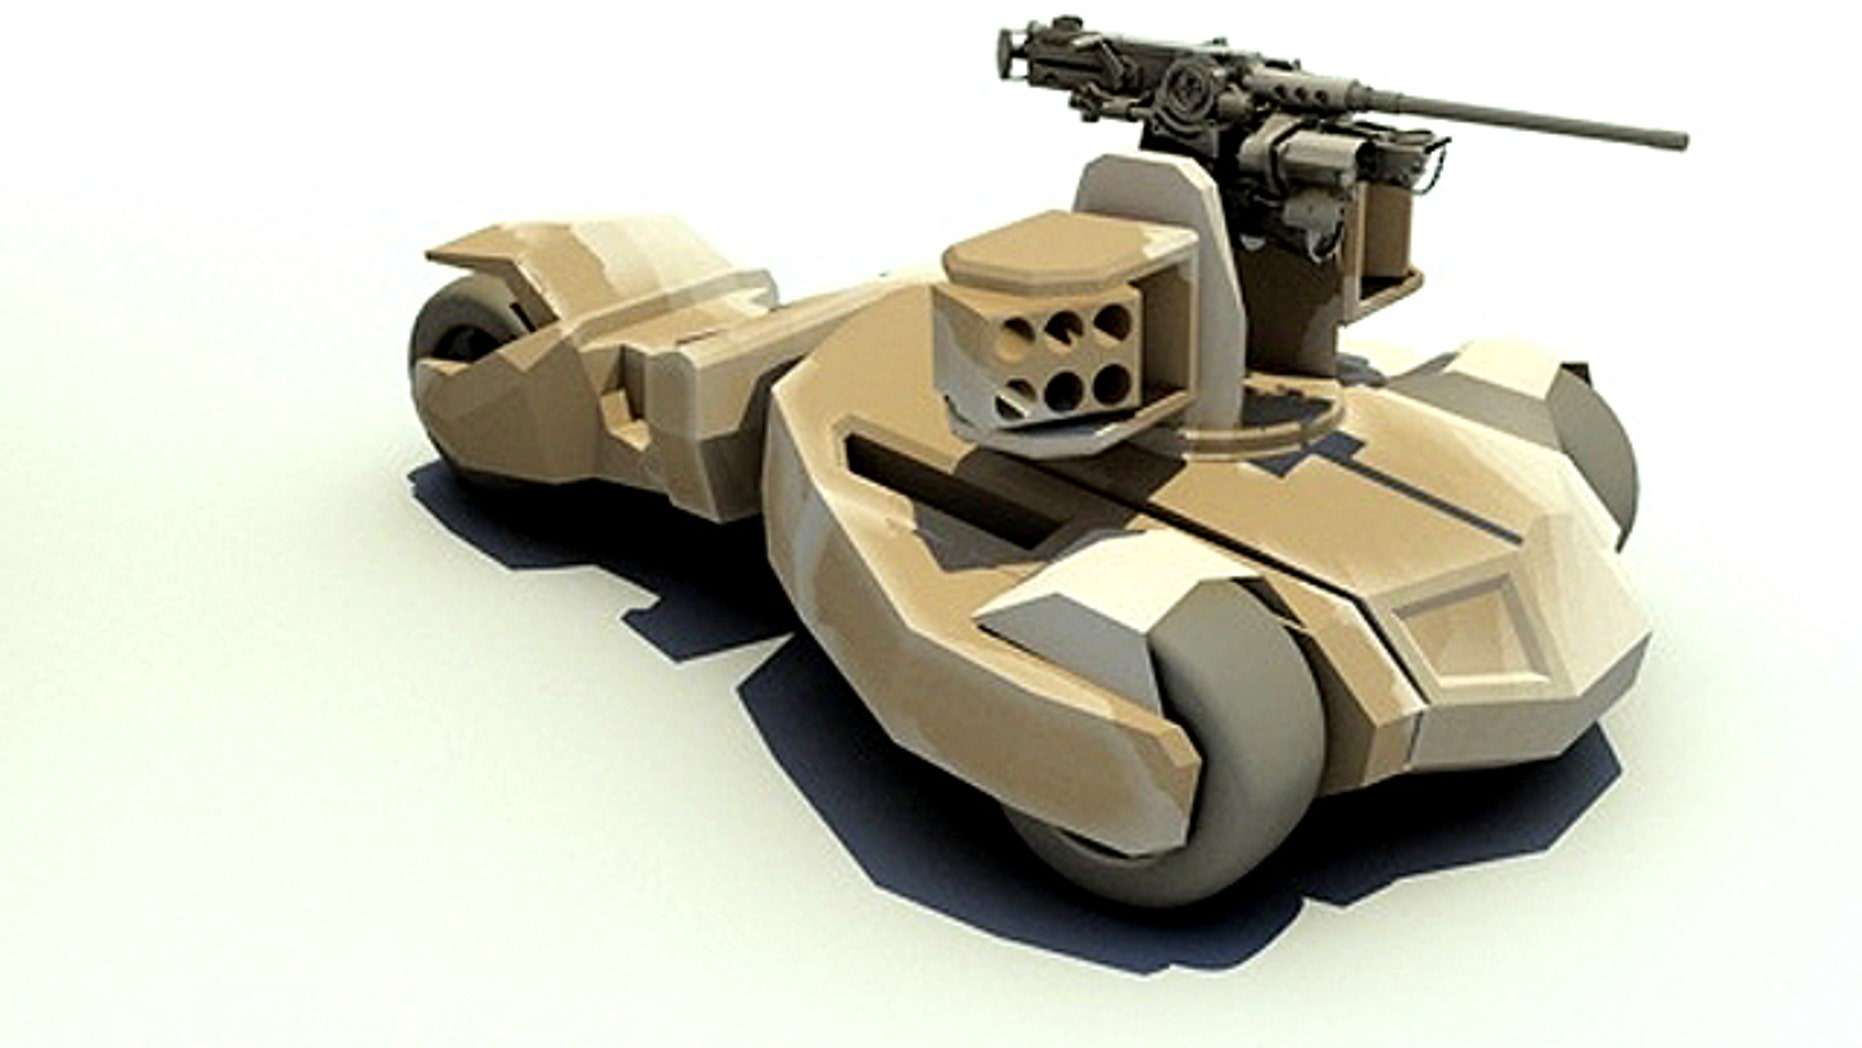 An experimental tank design from BAE Systems may remind you of the latest Batman movies -- because its designers were inspired by the caped crusader.